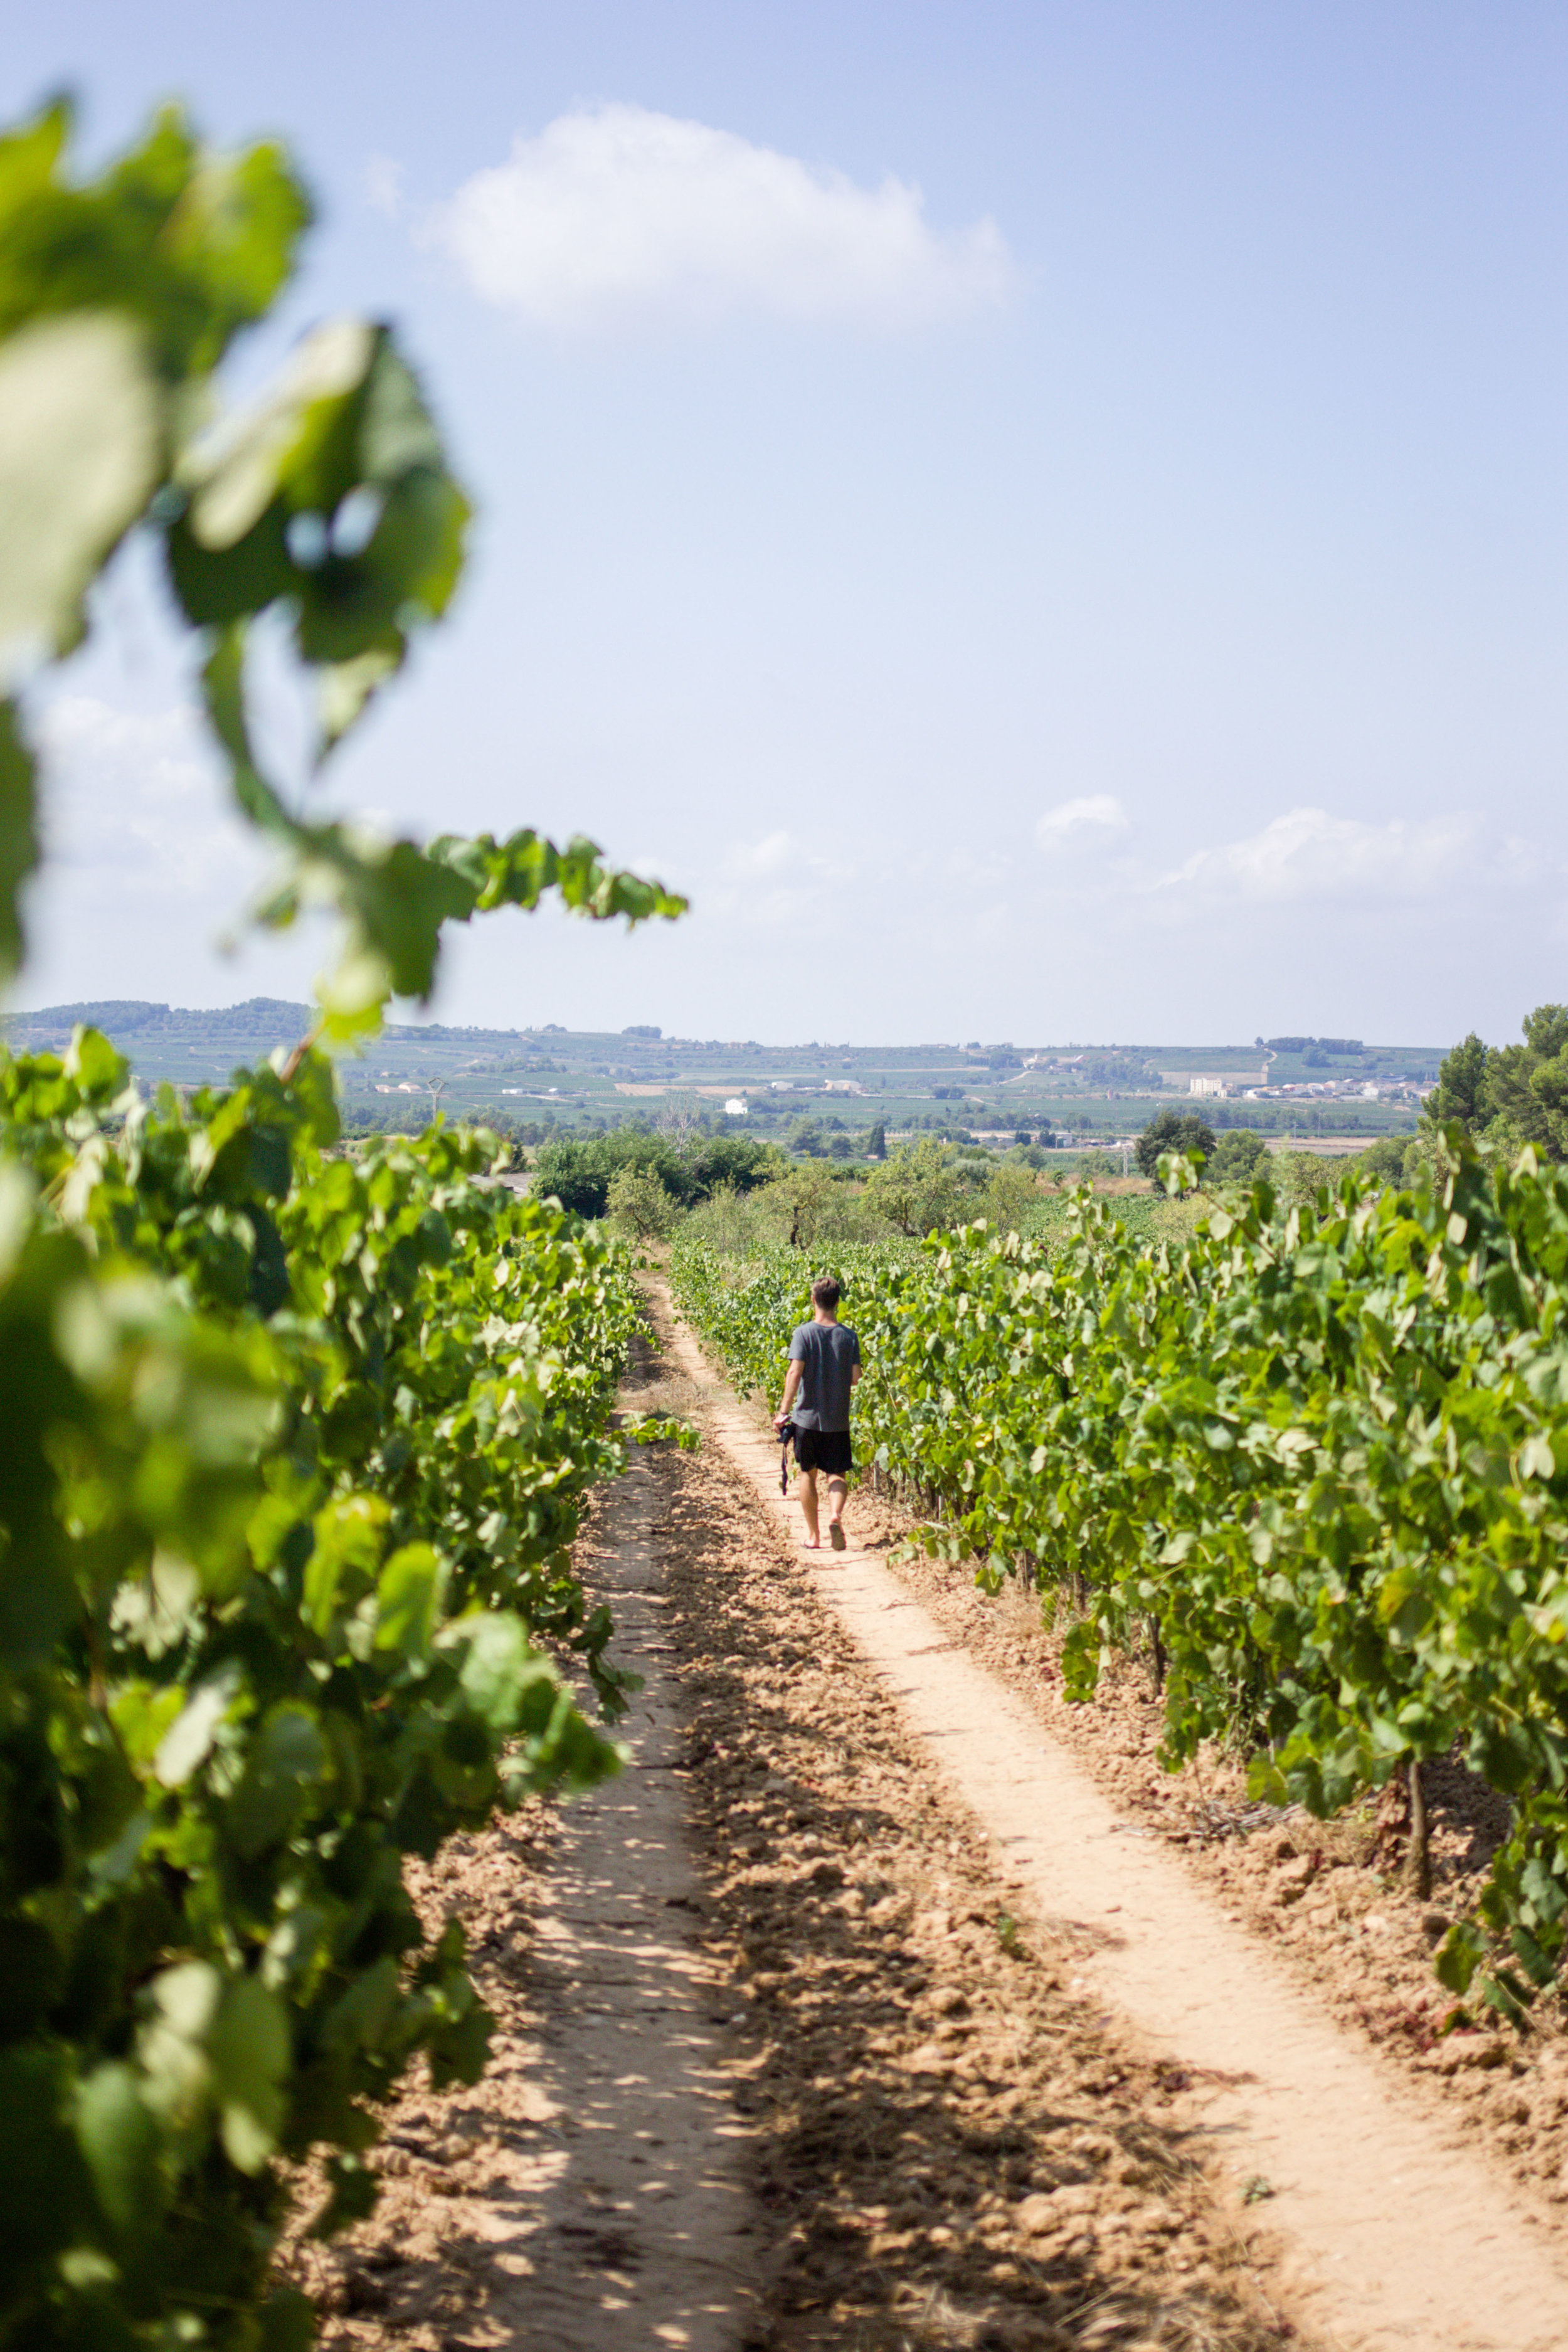 Person taking a walk in the vineyard on a sunny day